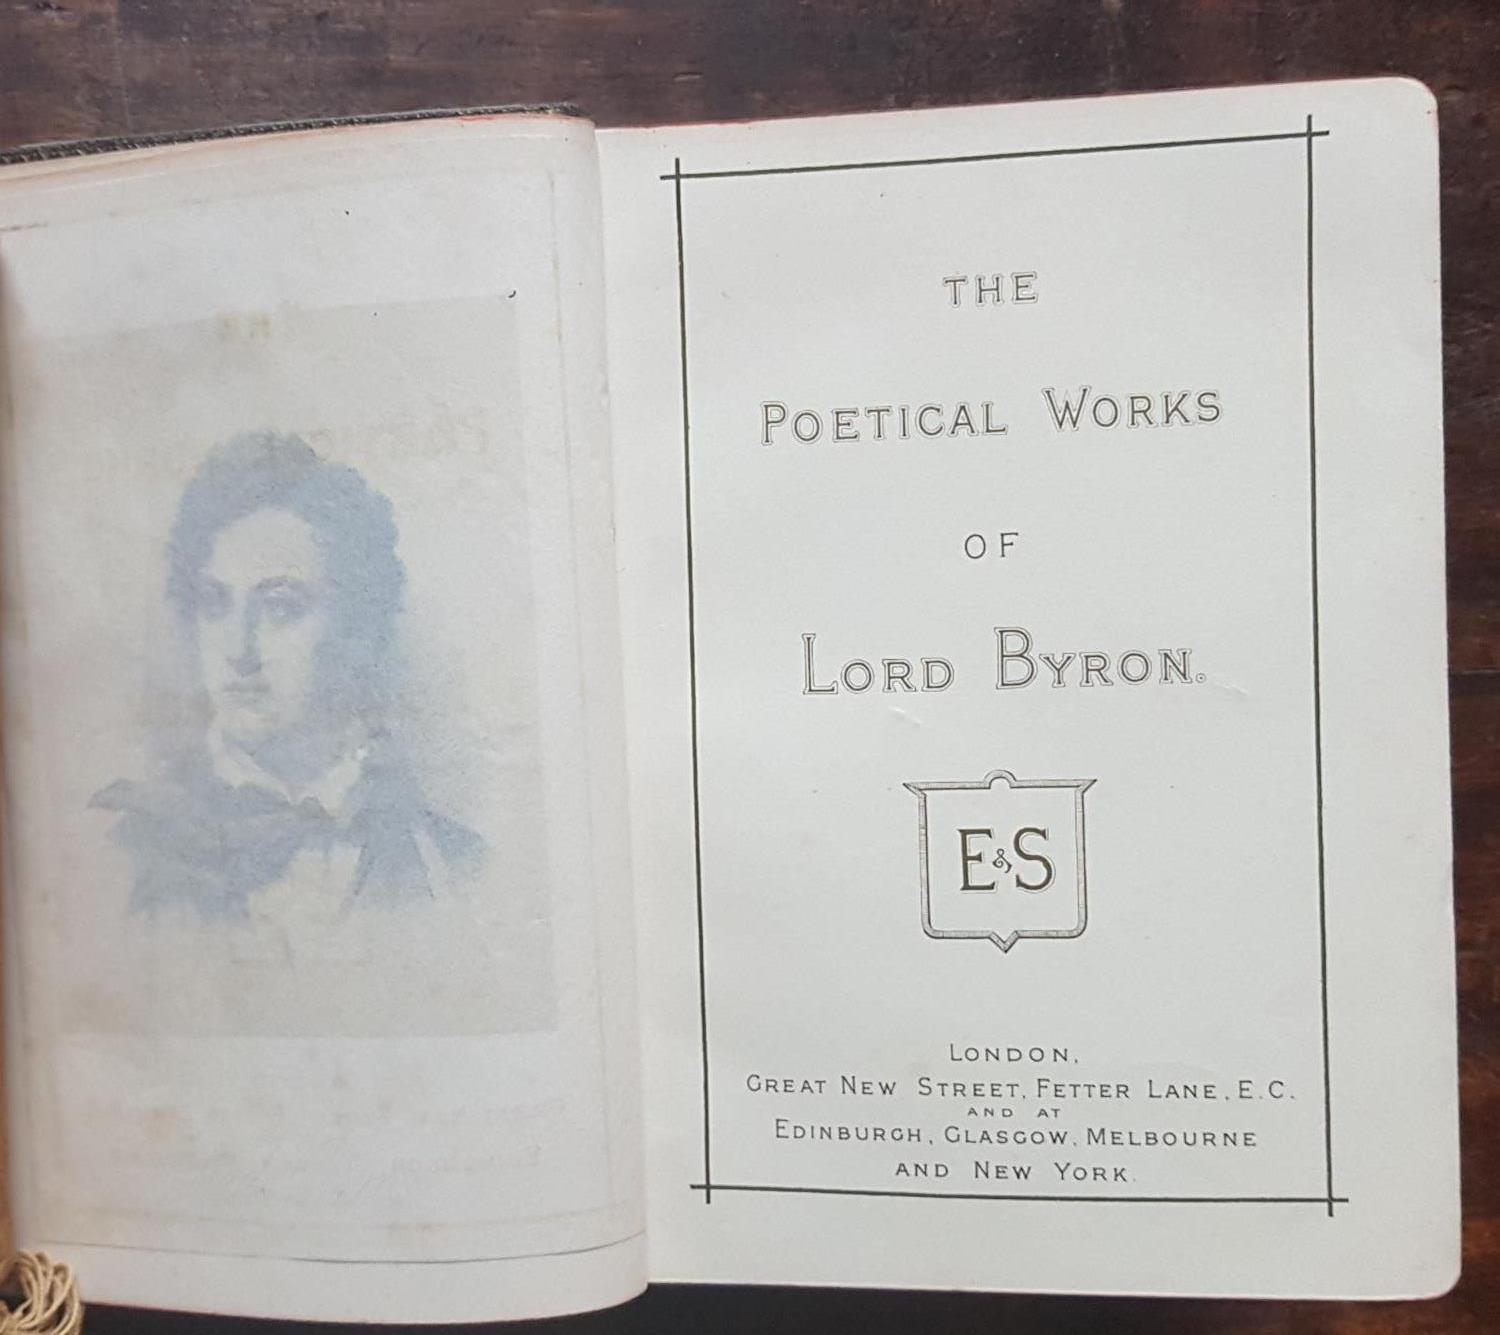 Lot 363 - The Poetical works of Lord Byron. E & S London, Edinburgh, Glasgow, Melbourne and New York, along